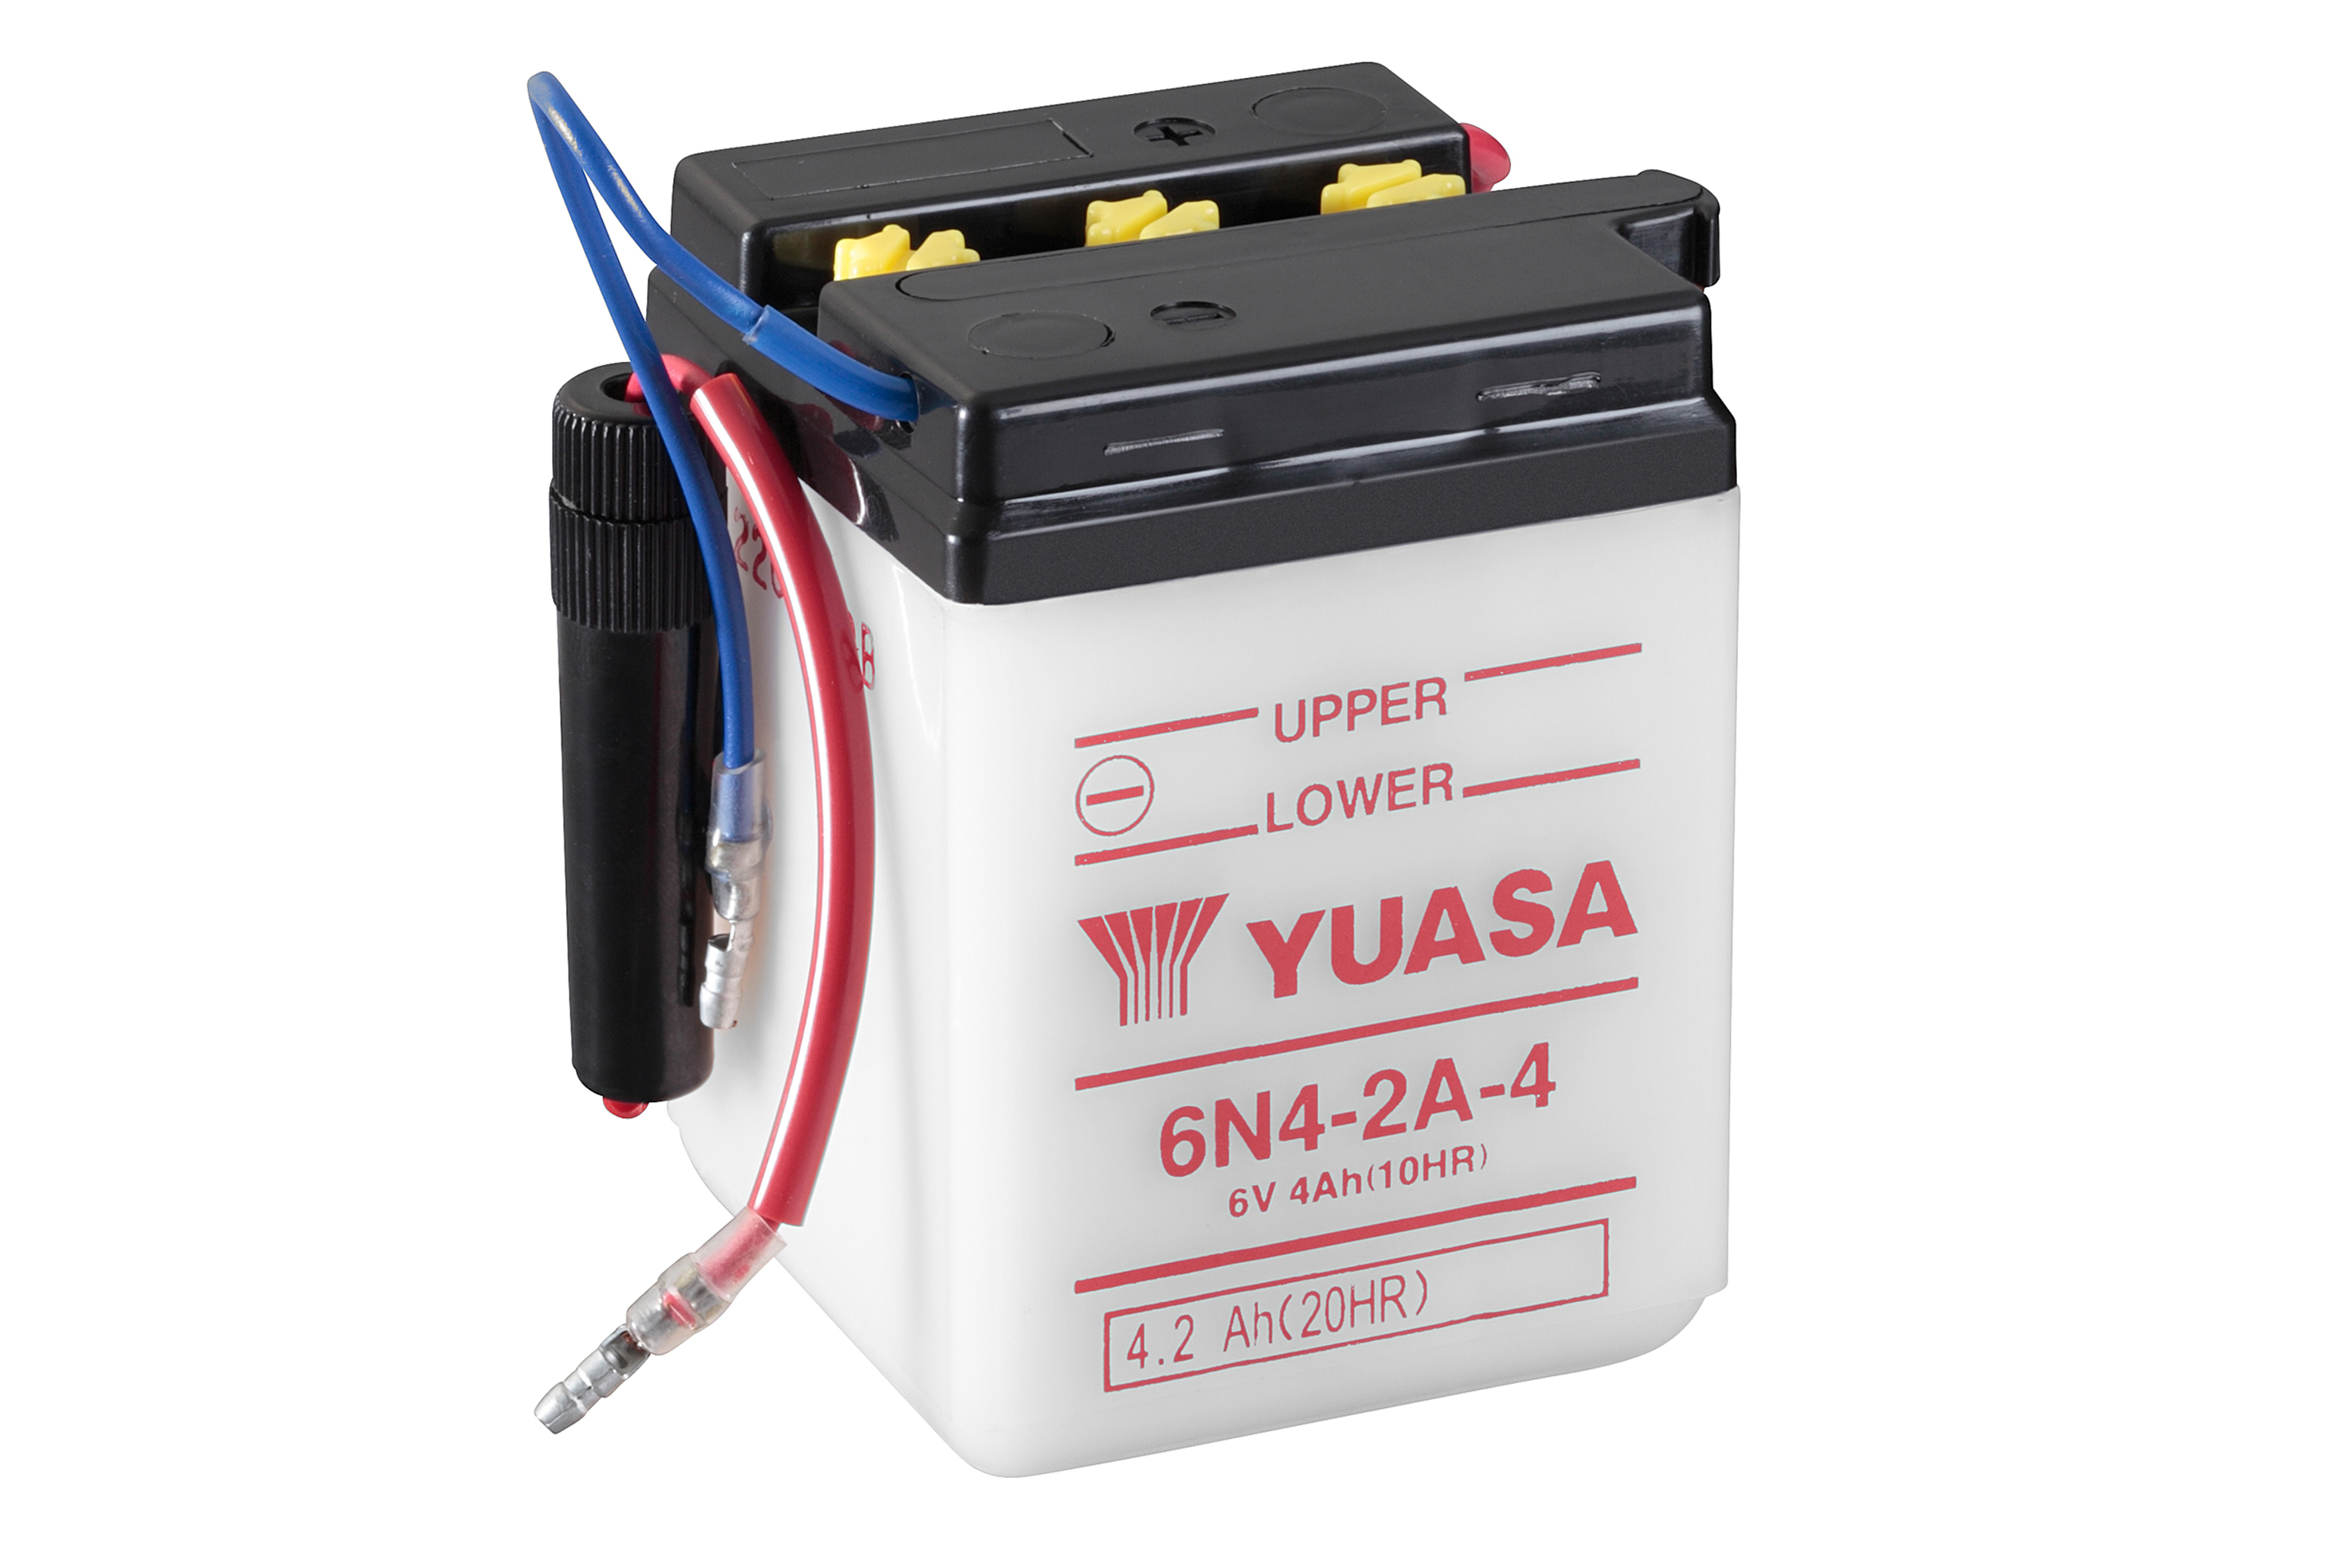 yuasa motorcycle battery 6n4 2a 4 6v 4ah from county battery. Black Bedroom Furniture Sets. Home Design Ideas